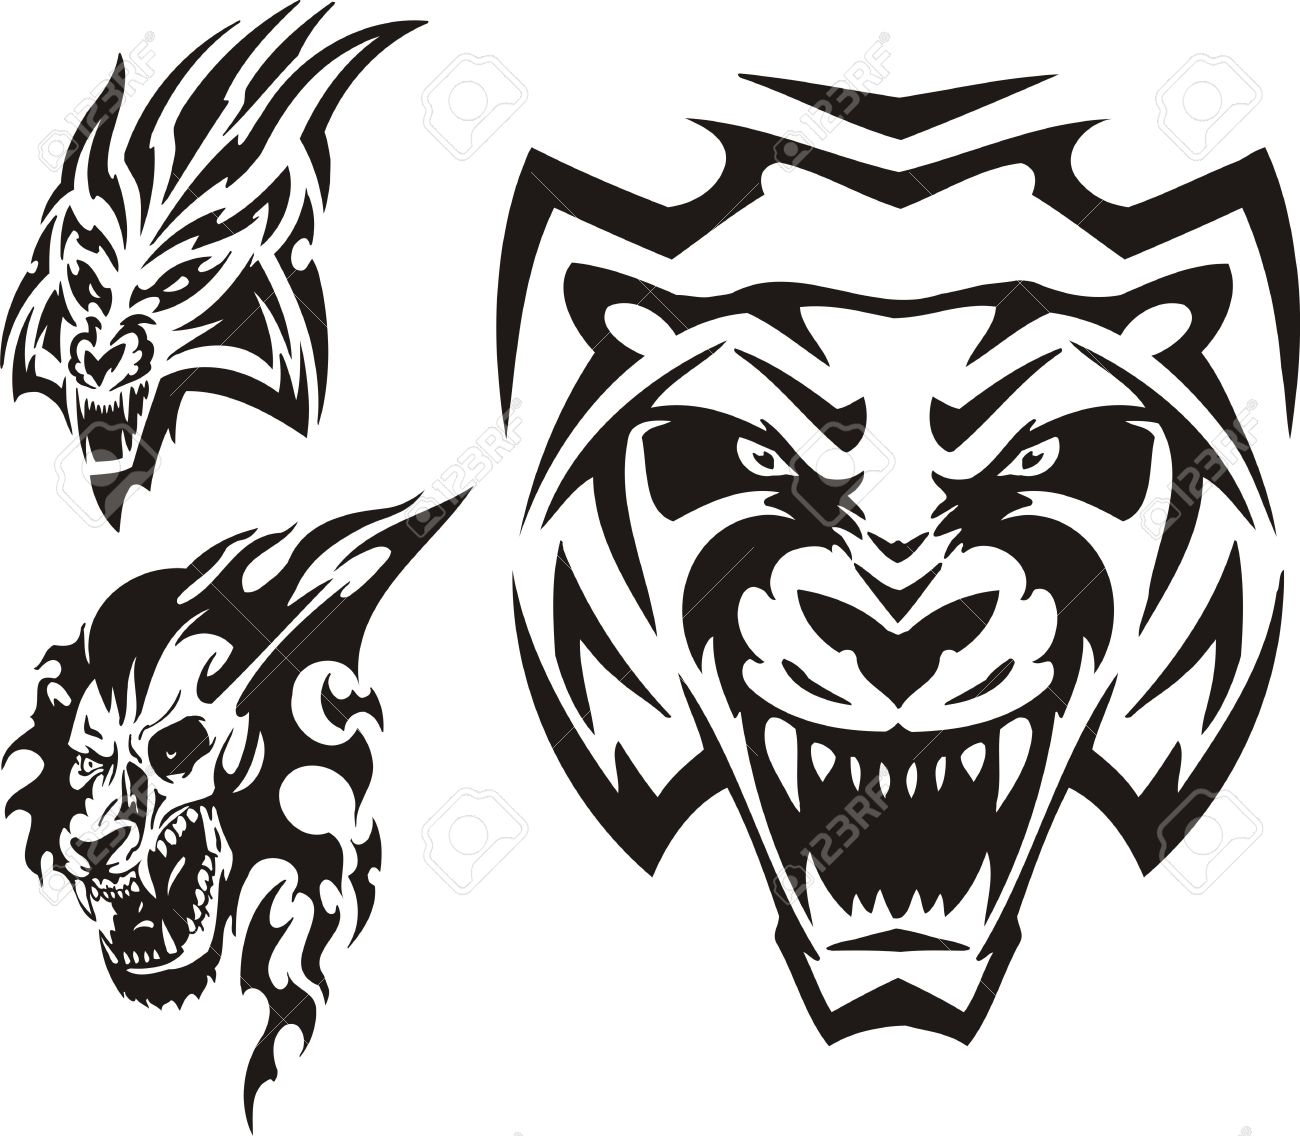 Tiger, lynx and lion. Tribal predators. Vector illustration ready for vinyl cutting. Stock Vector - 8759403